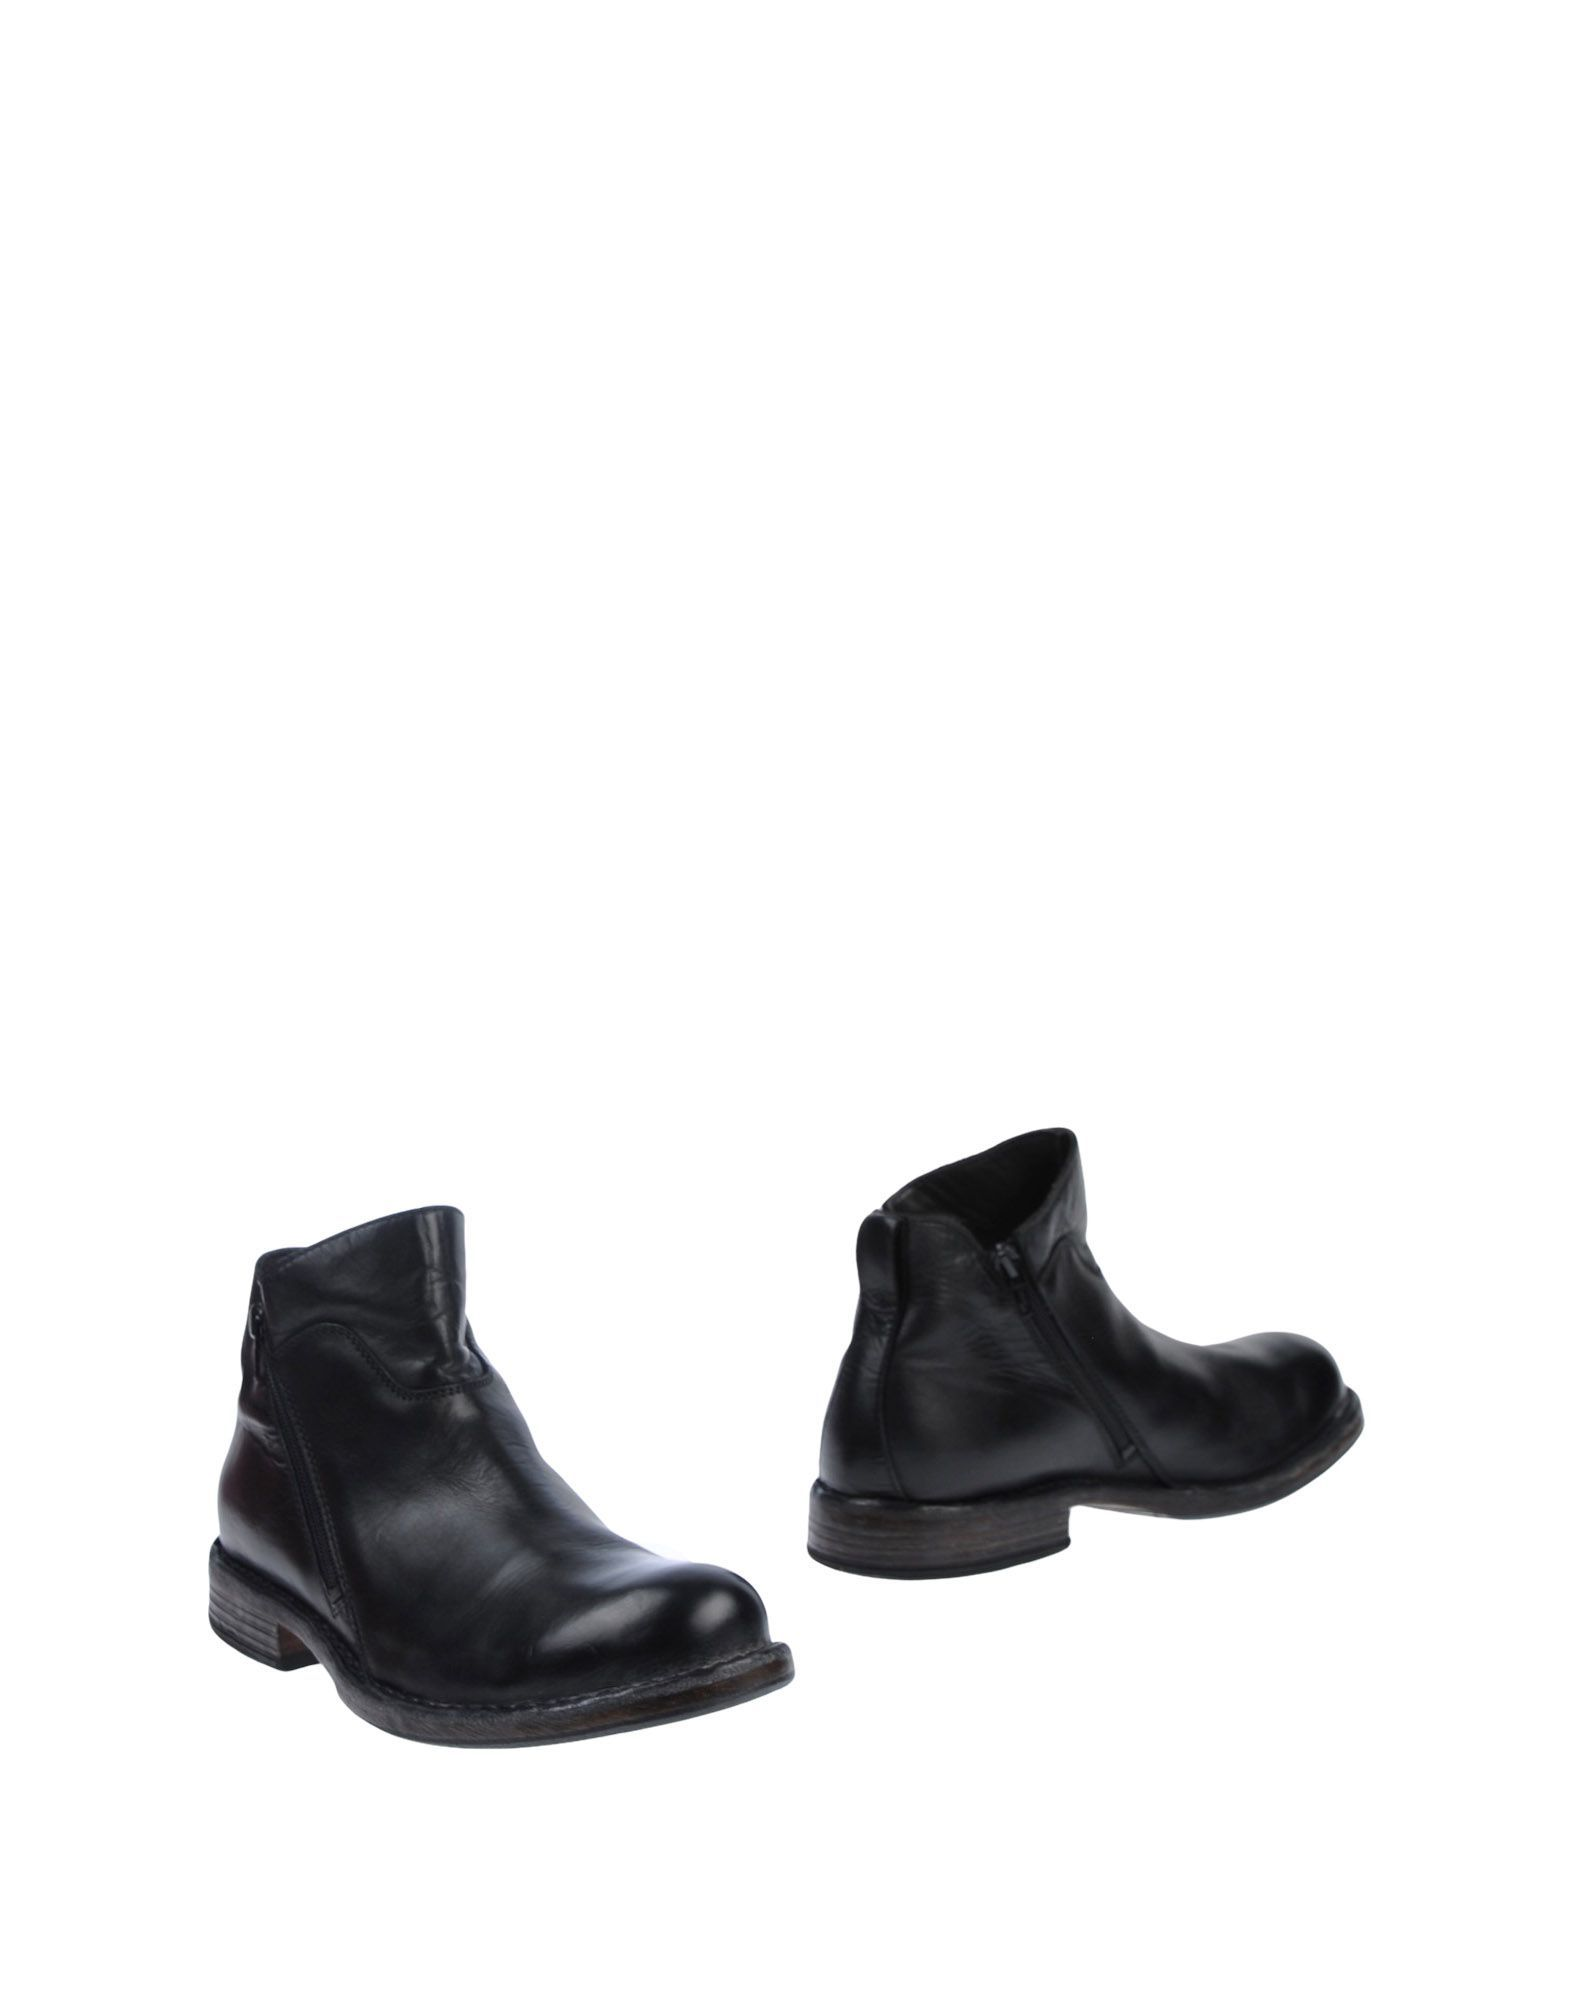 Moma Black Leather Boots